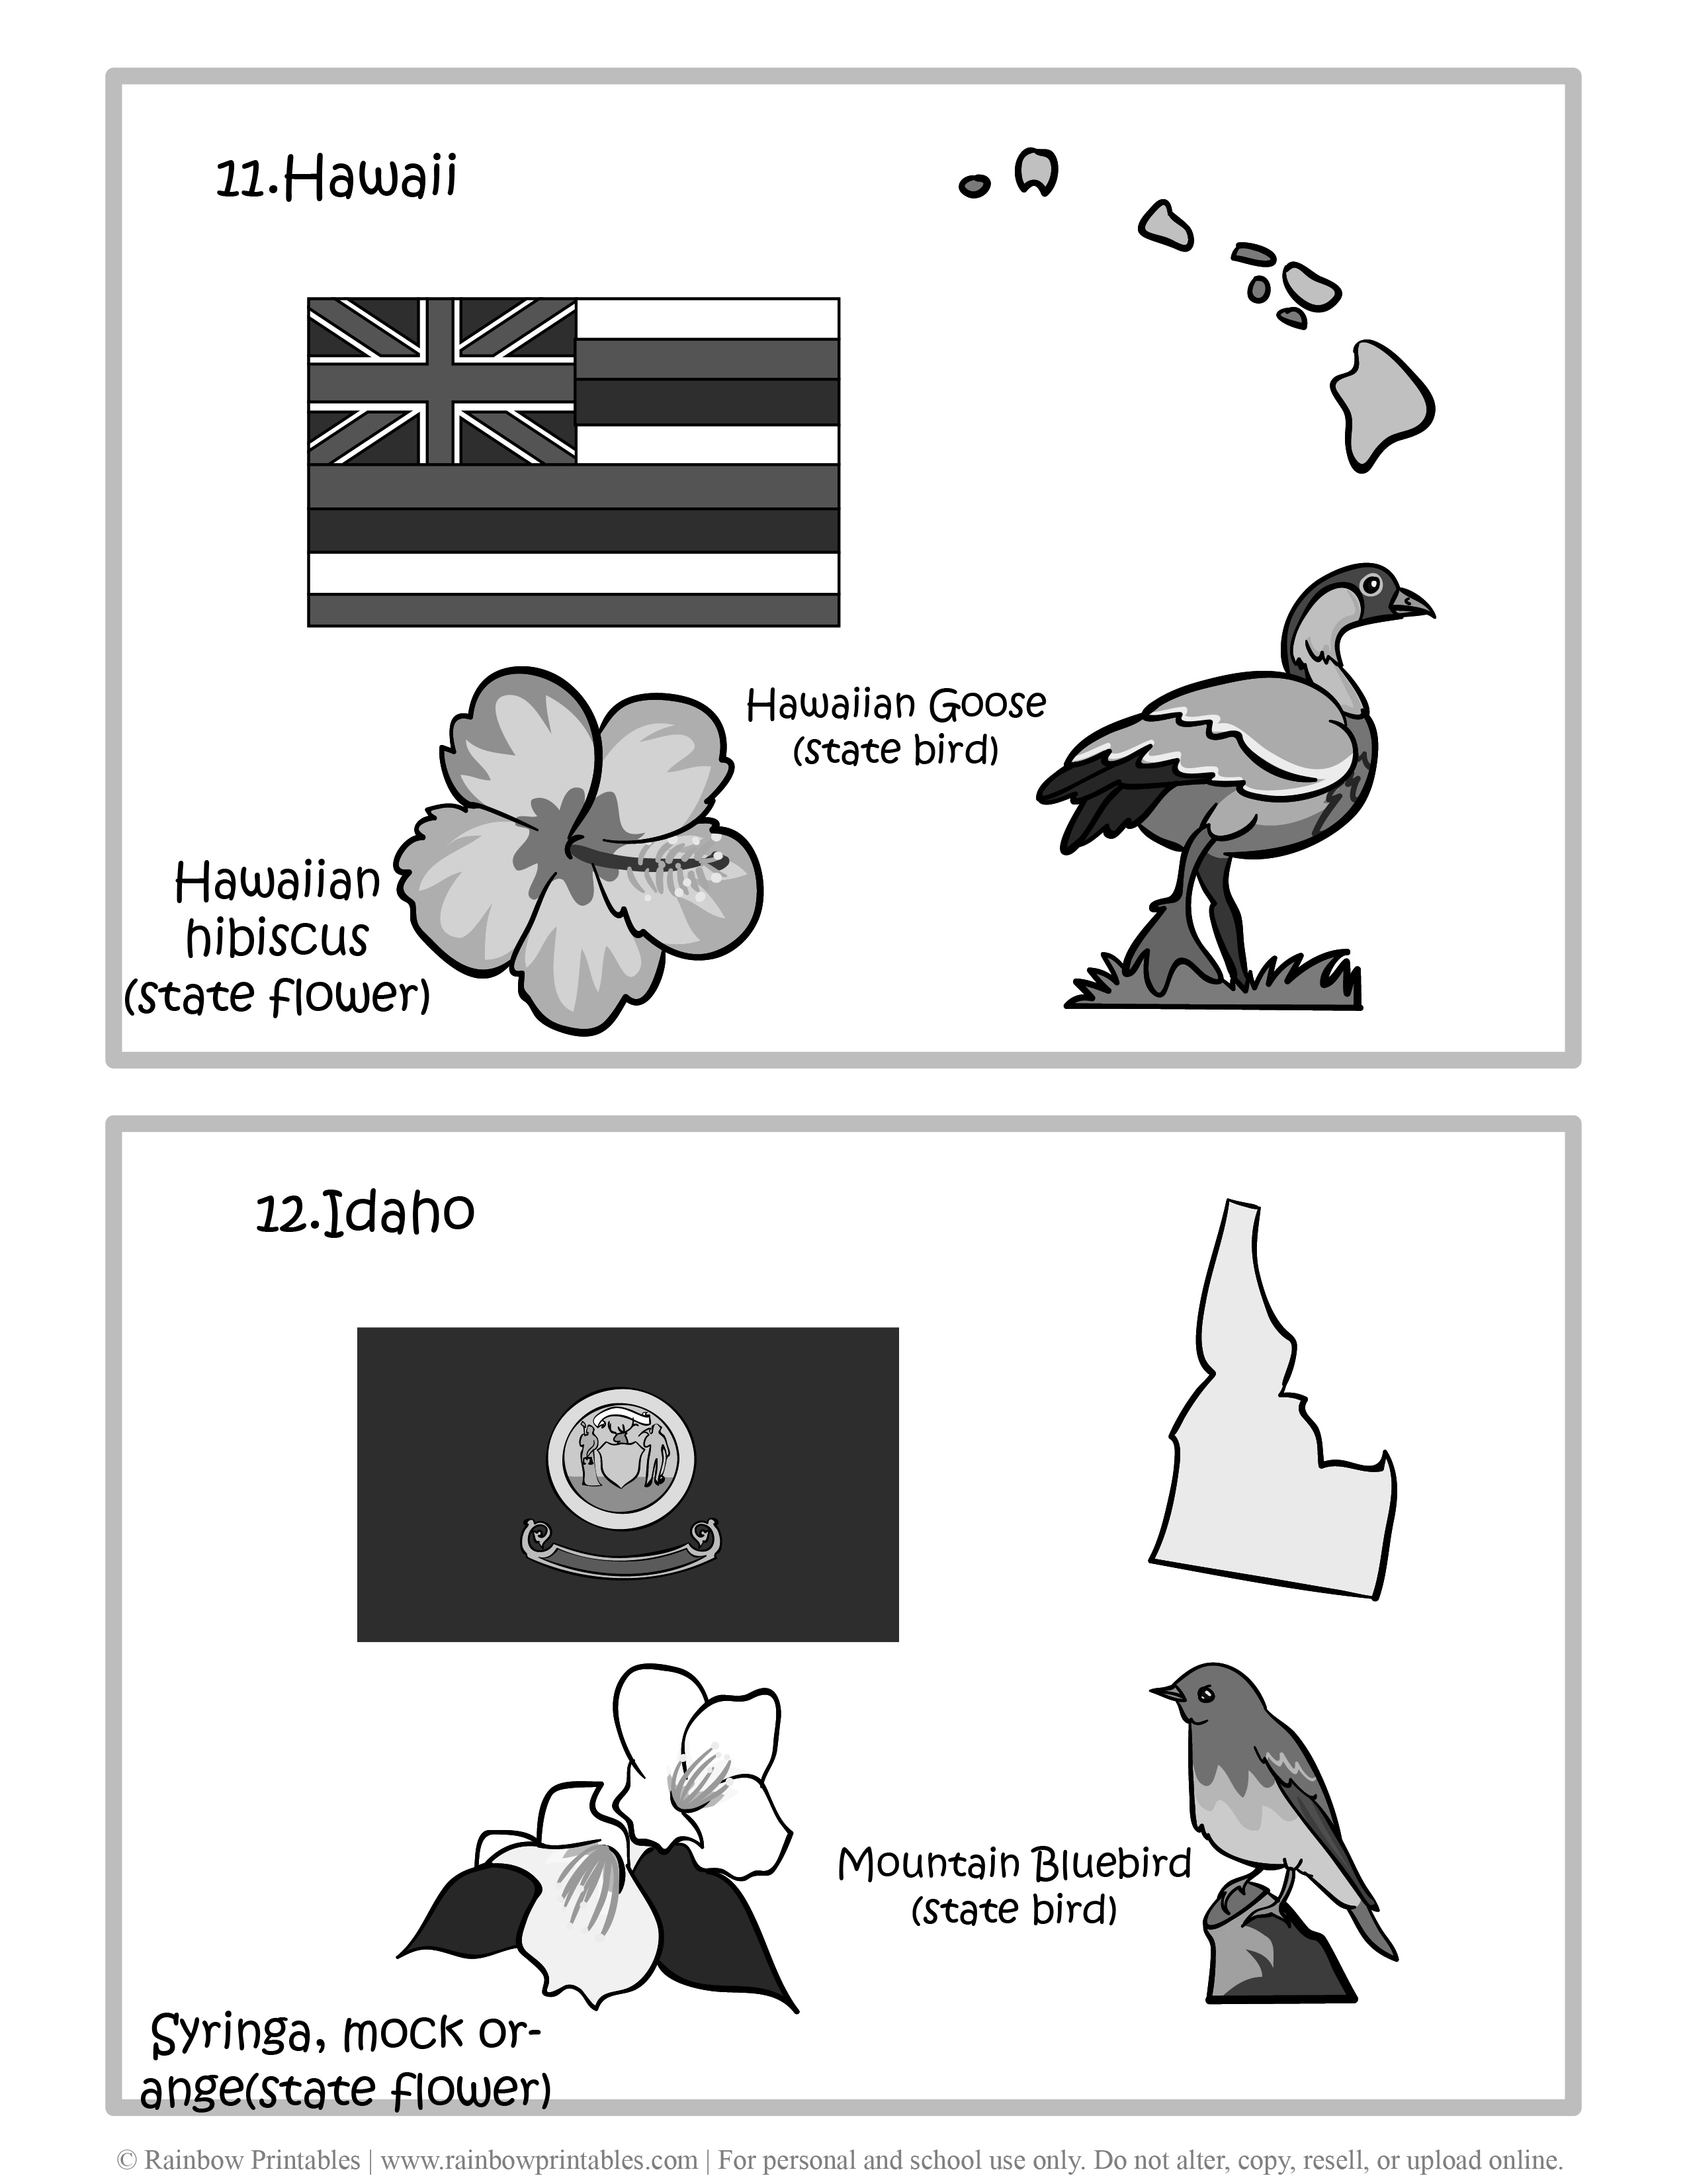 Hawaii, IDAHO, 50 US State Flag, State Bird, State Flower, United States of America - American States Geography Worksheet Class Lesson Printables Flashcards Black White